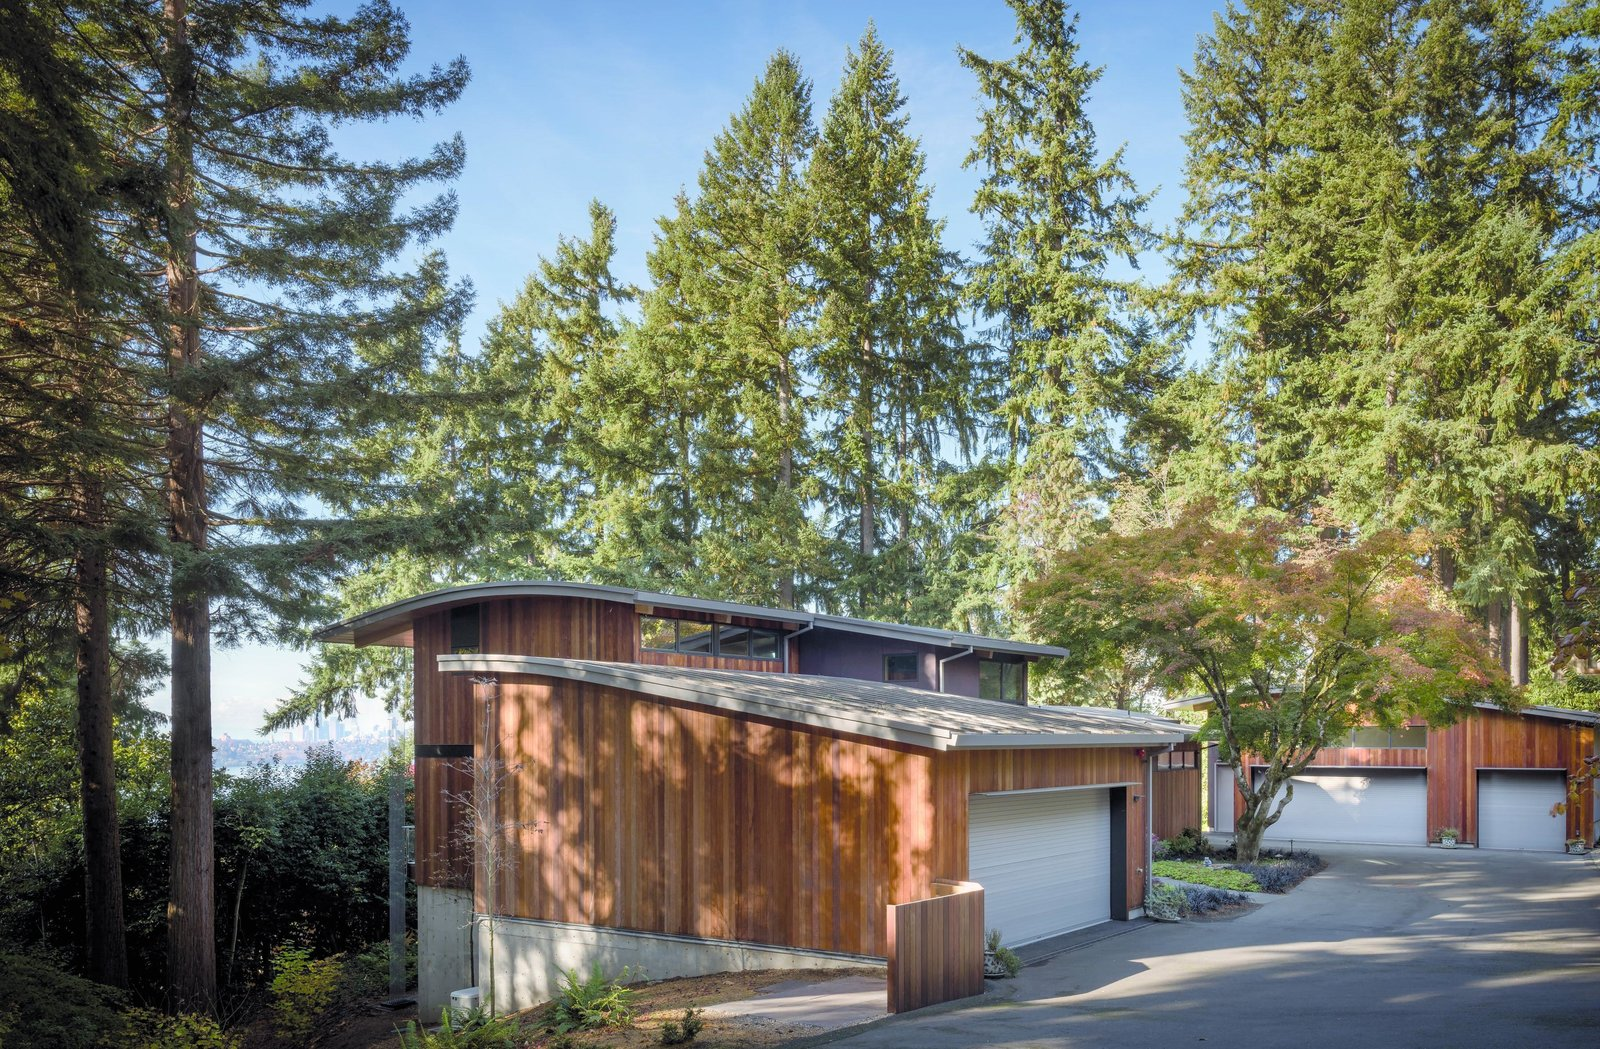 Exterior, House Building Type, Wood Siding Material, Curved RoofLine, and Concrete Siding Material Wave House | Olson Kundig  Wave House by Olson Kundig